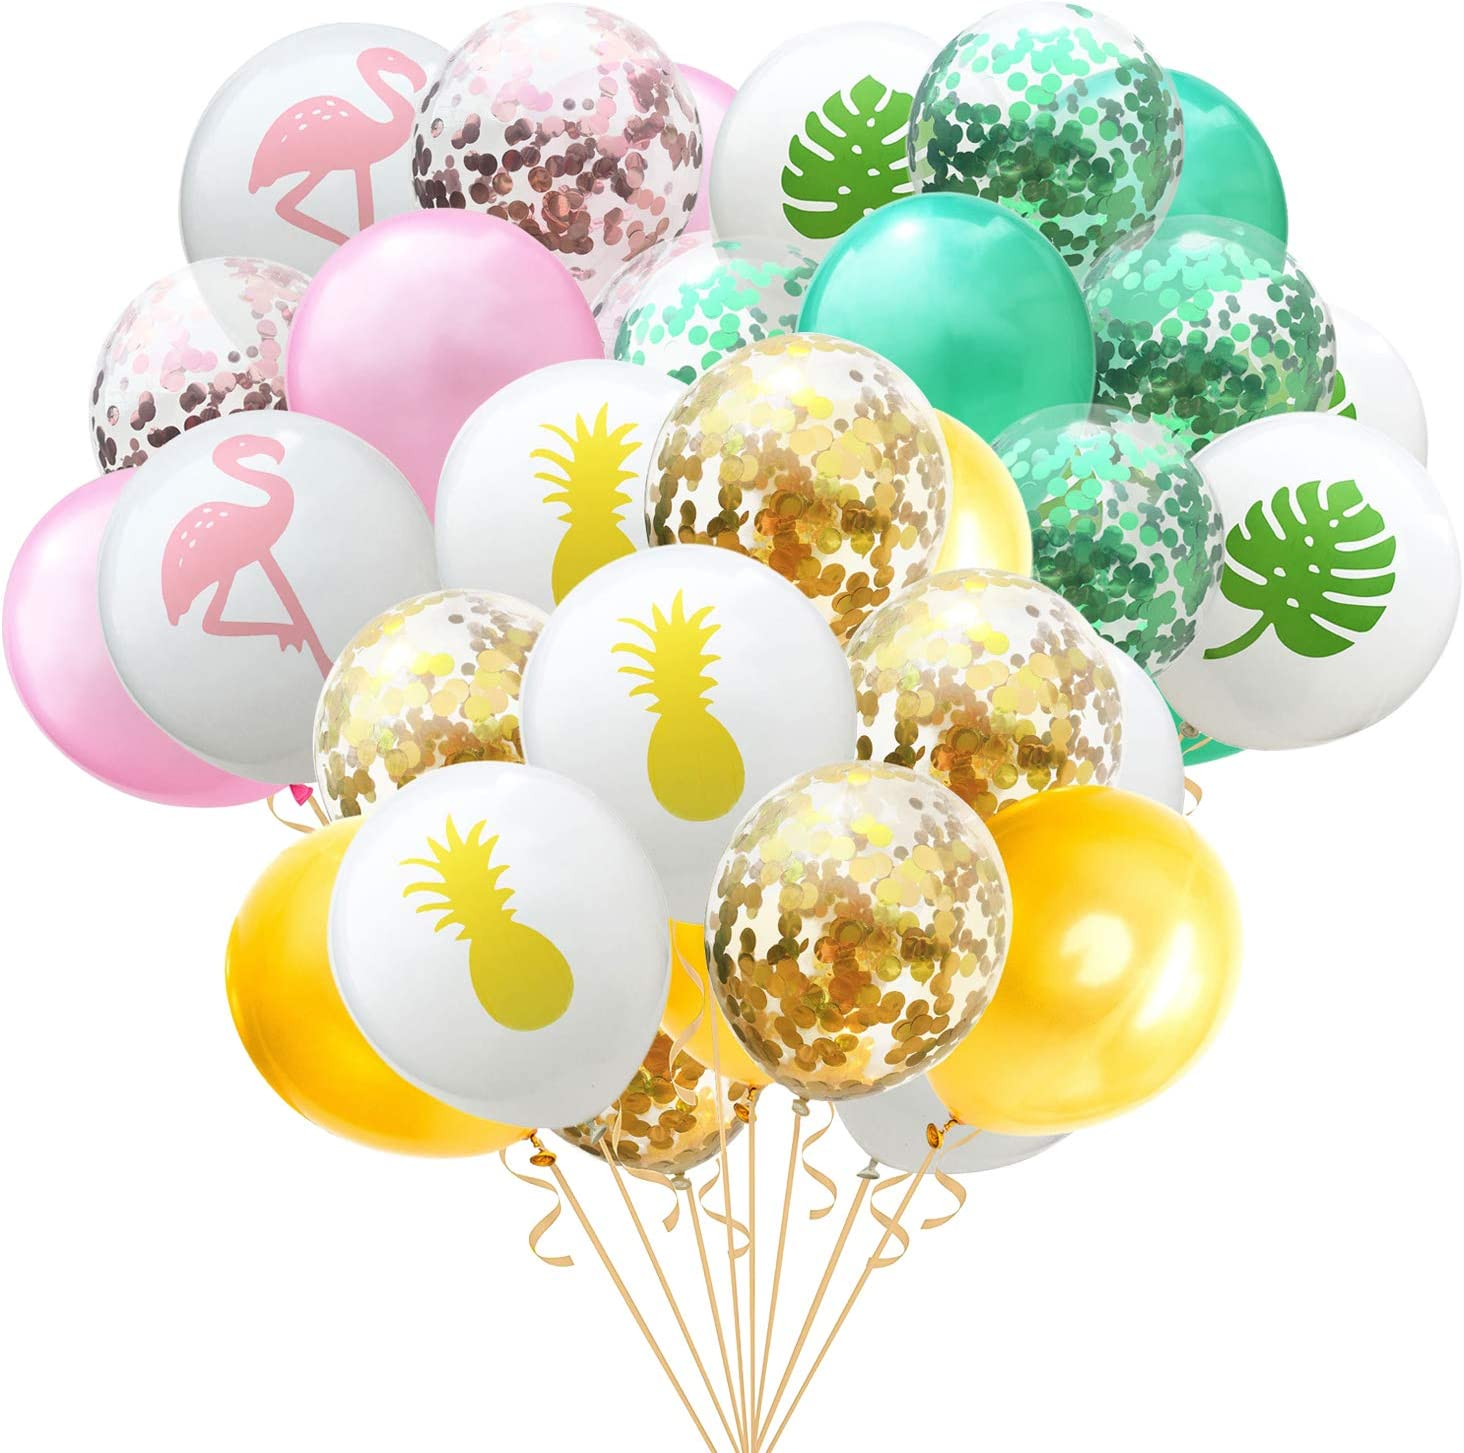 Faylapa 45 Pcs Hawaii Tropical Balloon,Colorful Party Balloons - Flamingo Tropical Leaf Pineapple for Hawaiian Luau Tropical Party Baby Shower Wedding Decoration